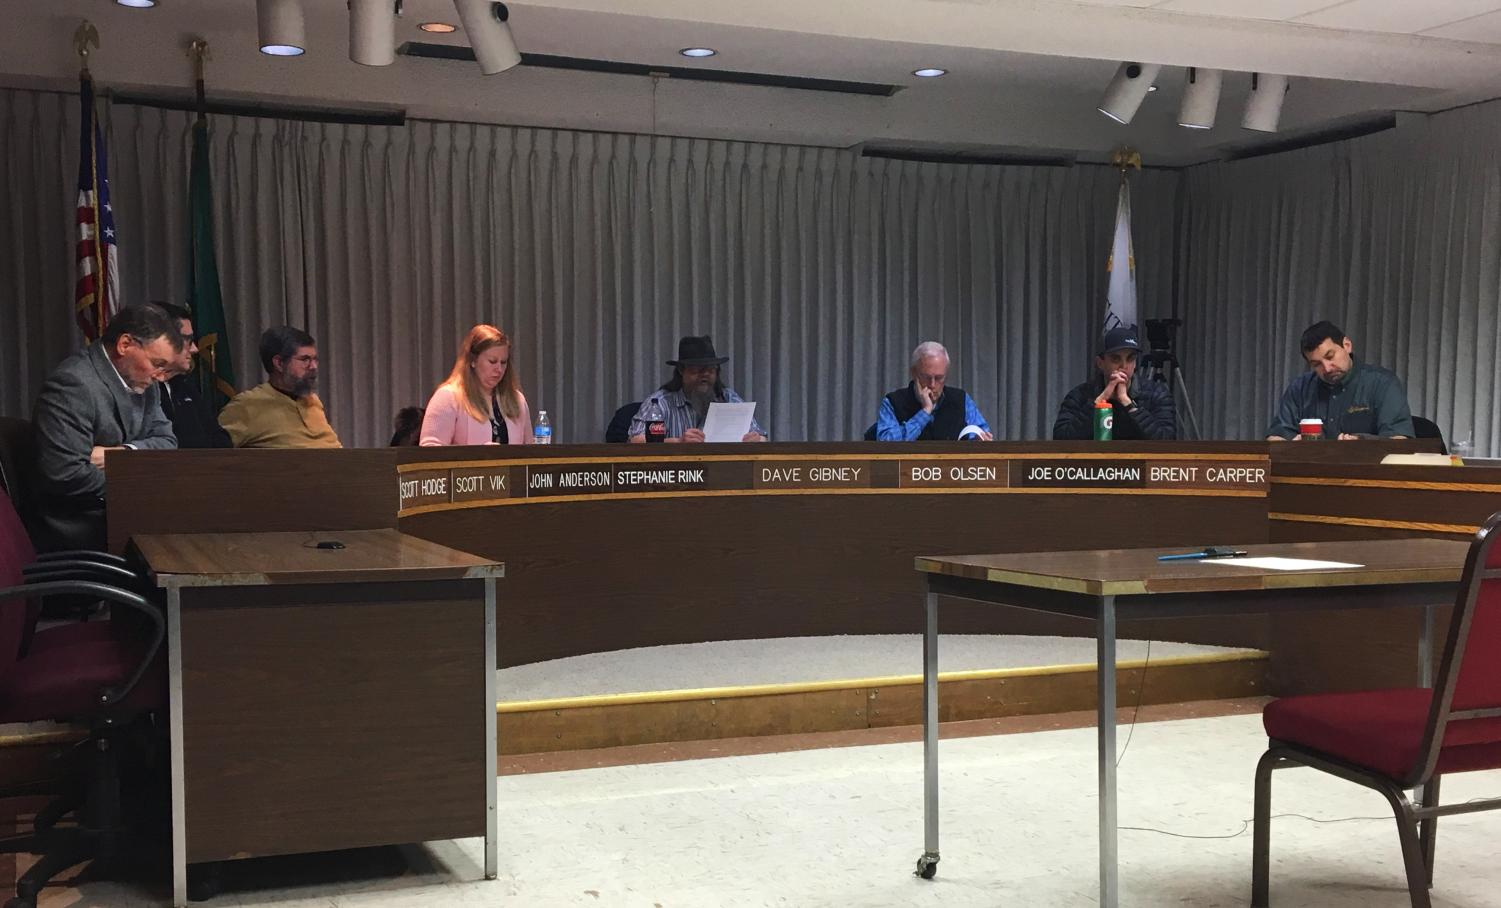 The commission is considering 36,620 square feet of land at 50 NW Terre View Drive in the plan and classification. The land will not be reclassified and will remain a residential area.